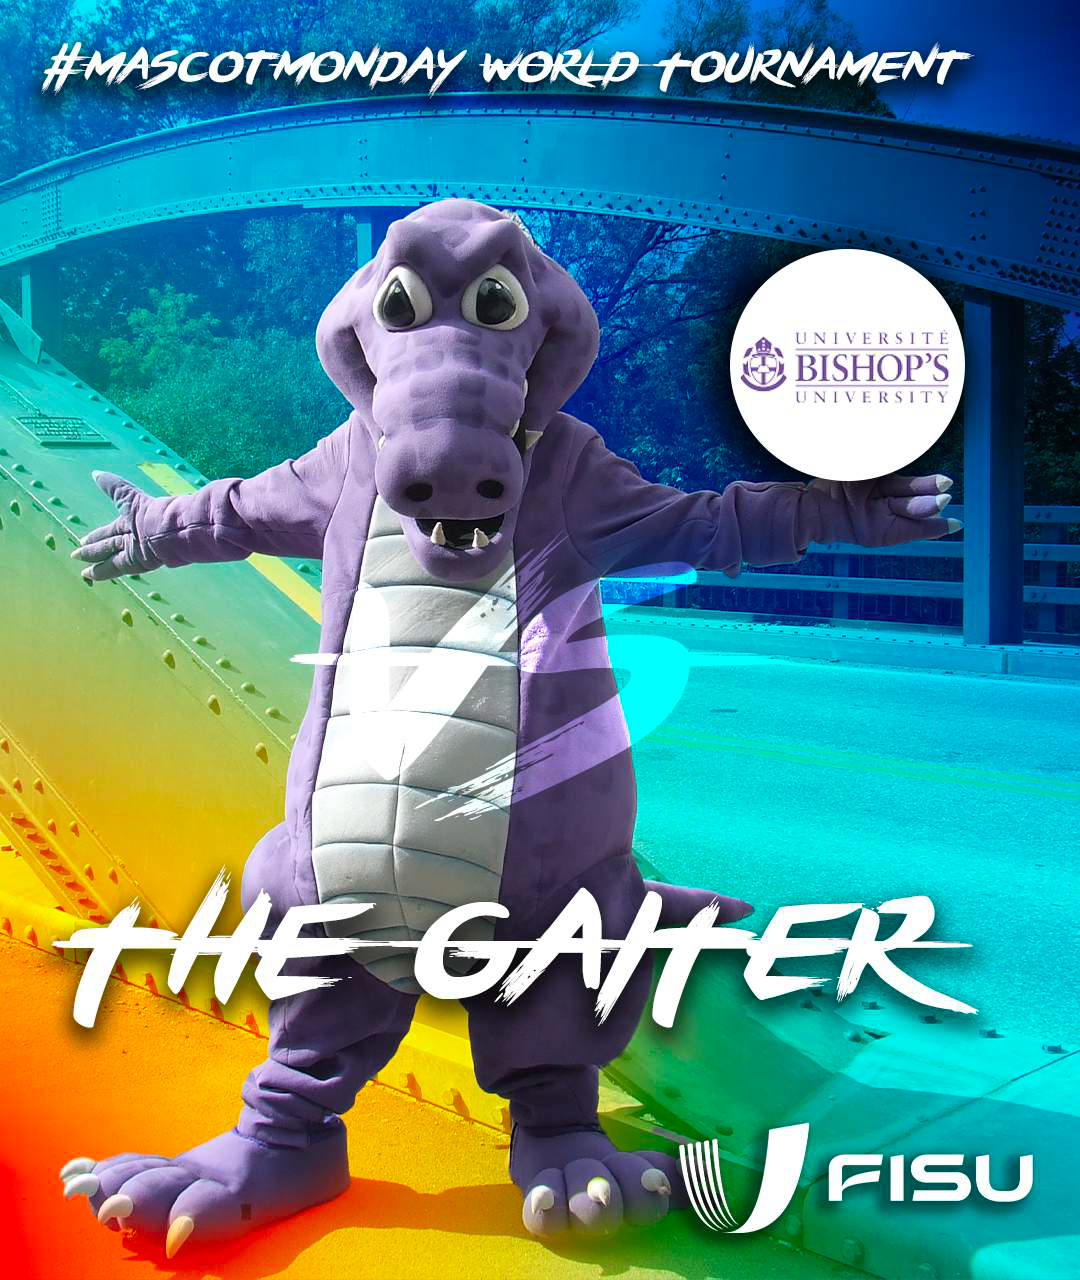 The_Gaiter.png (2.36 MB)